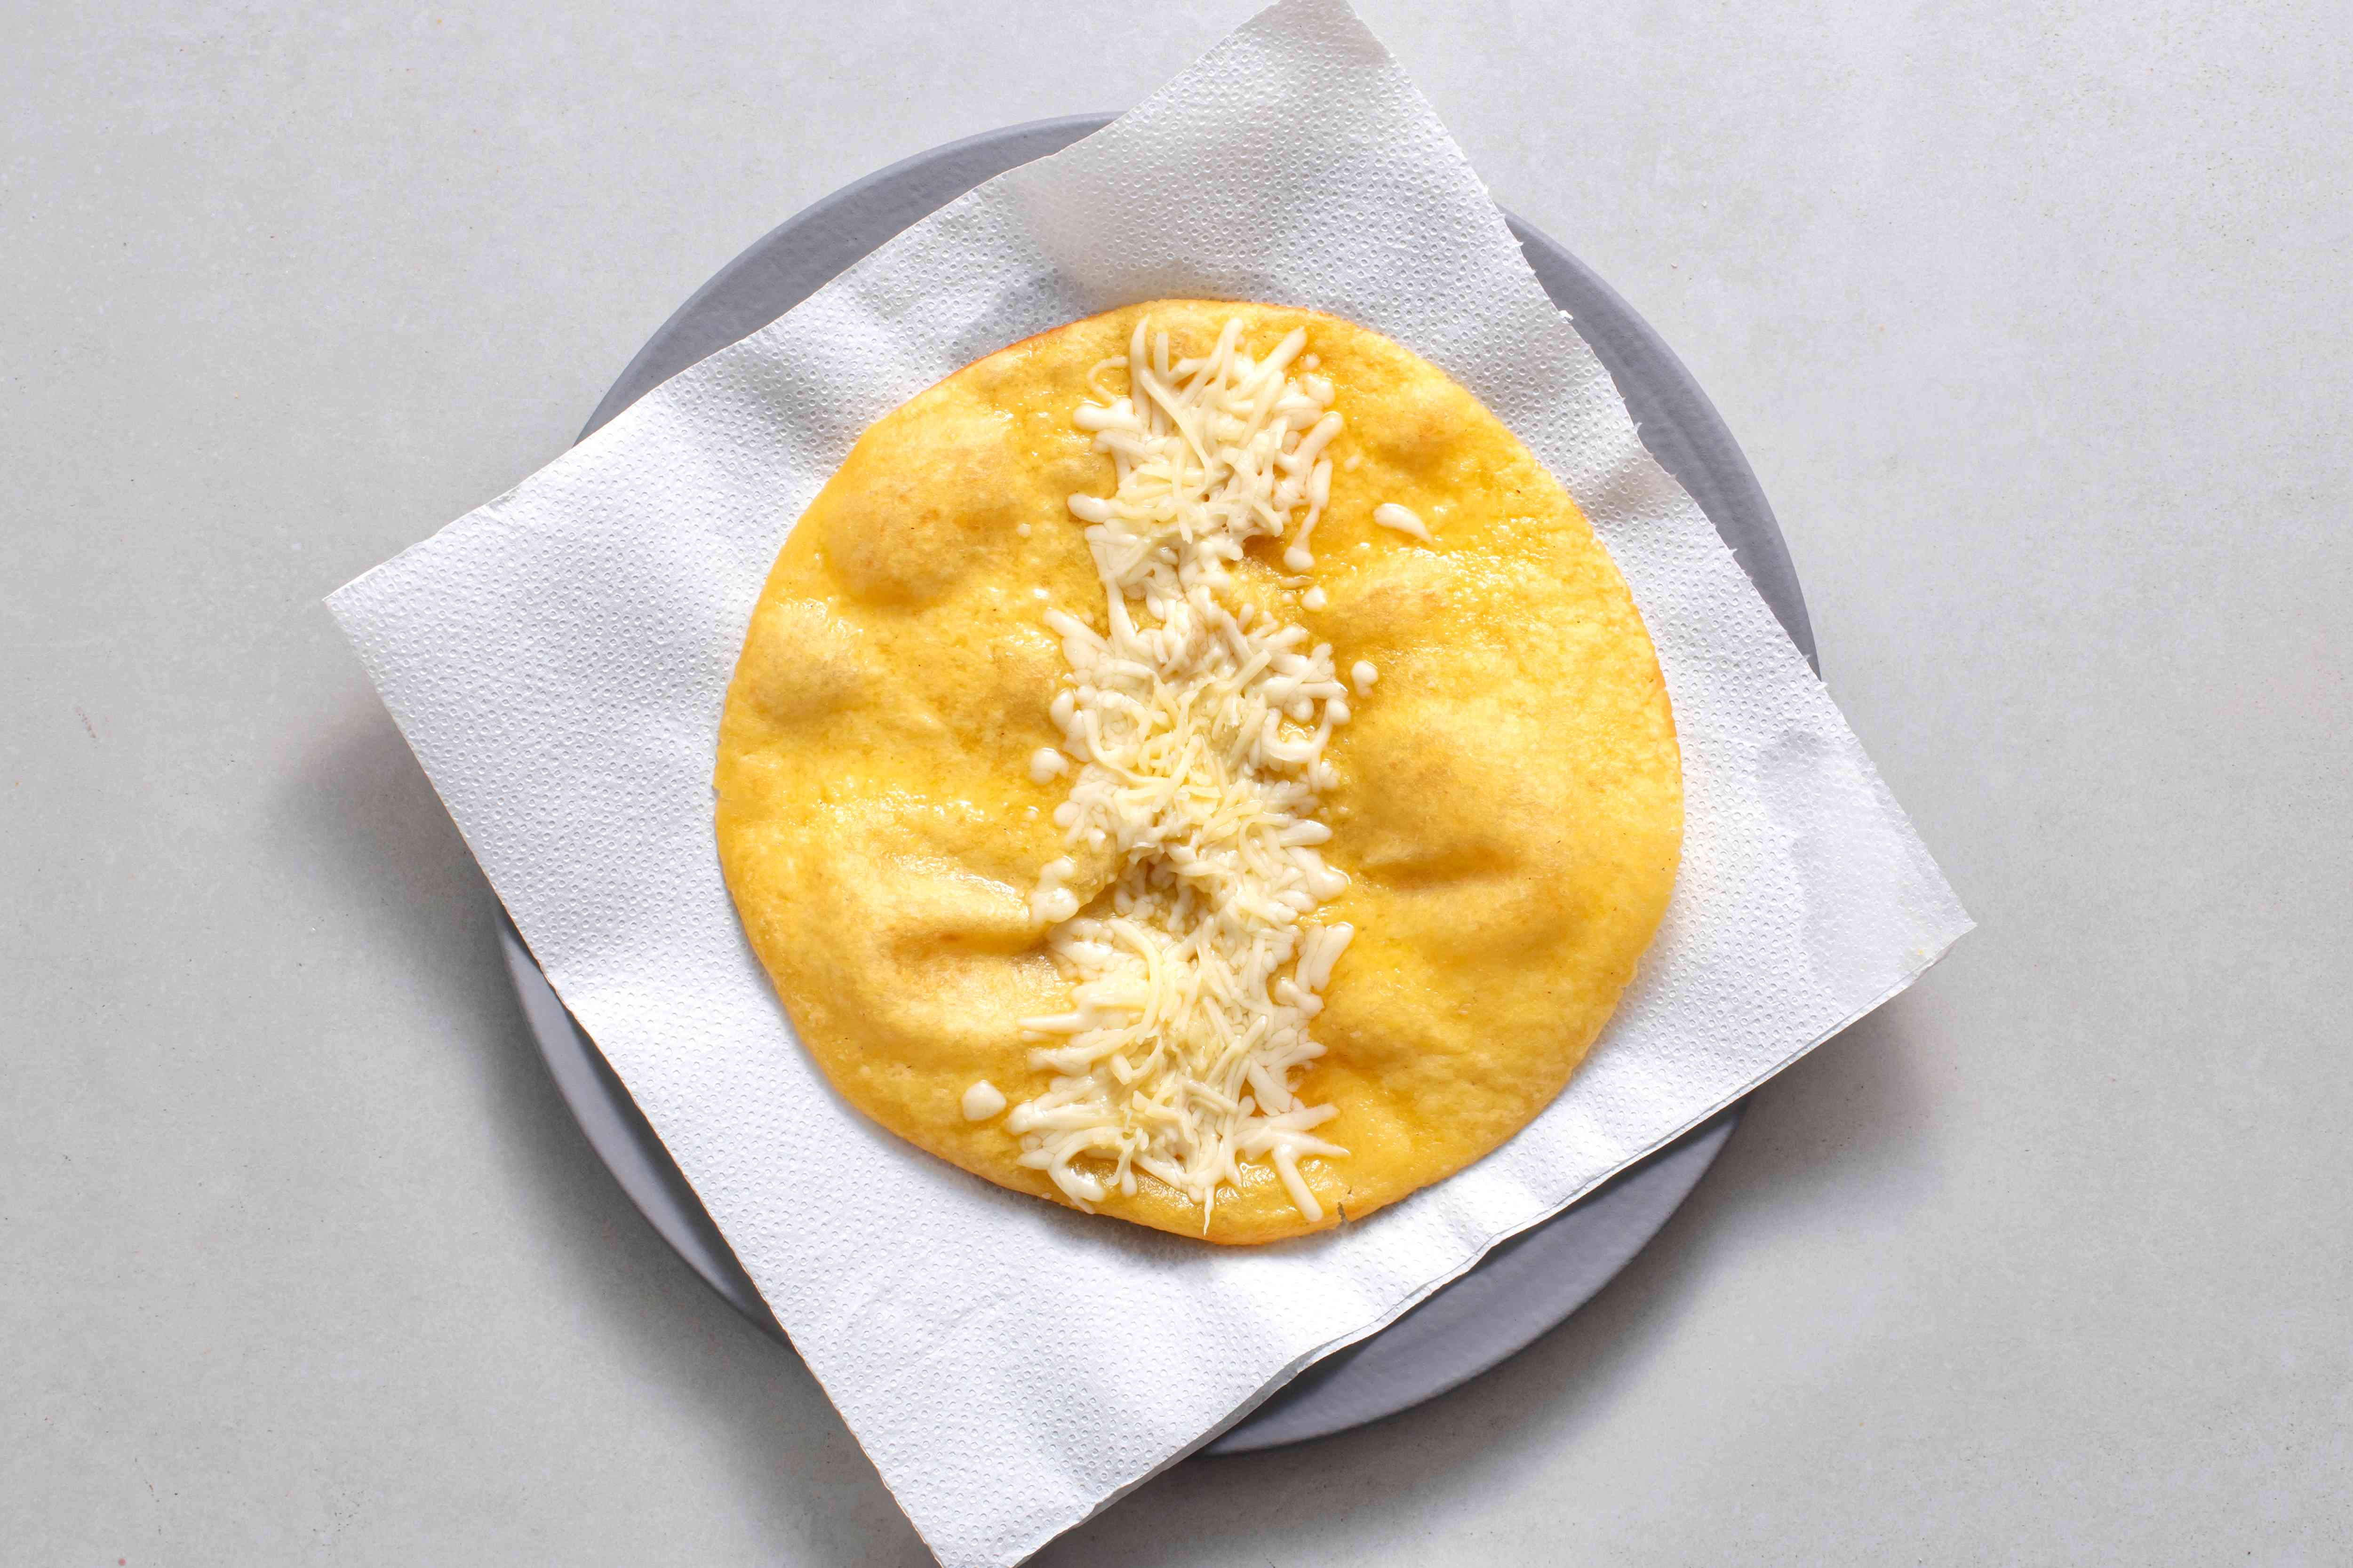 tortilla with cheese on top